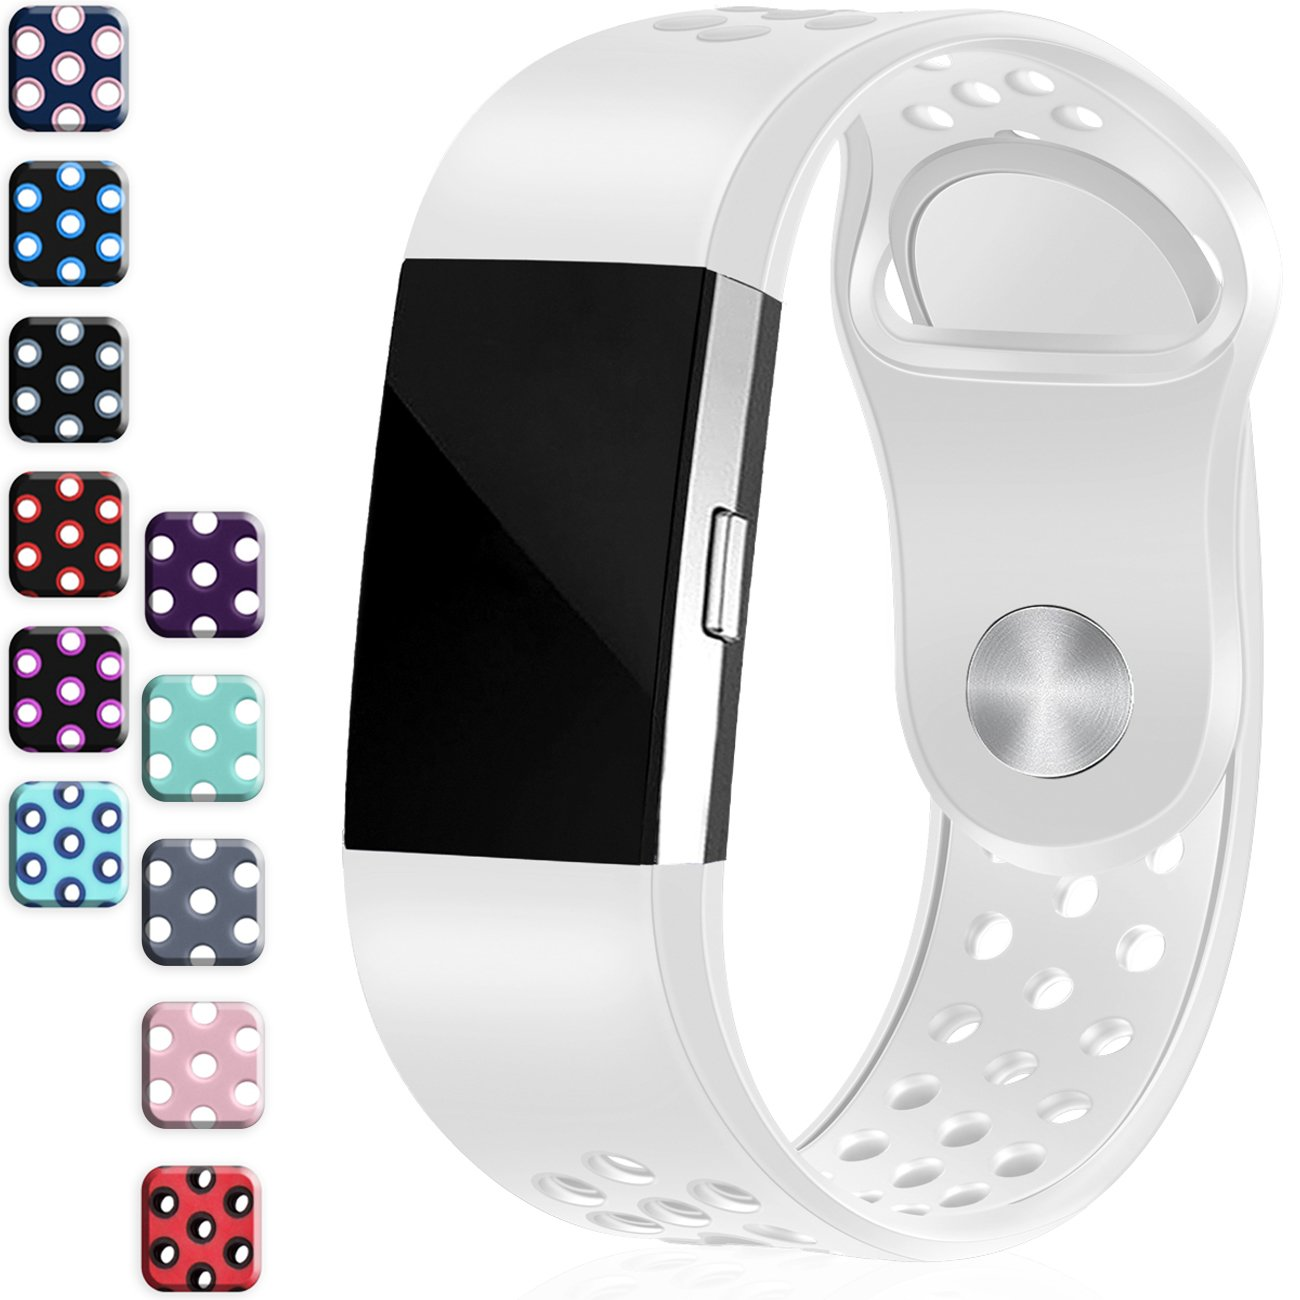 Wepro Fitbit Charge 2バンド、交換用for Fitbit Charge HR、バックル、15色、S、L 2 Large|#09-White ( with air holes ) #09-White ( with air holes ) Large B079BV7VZN